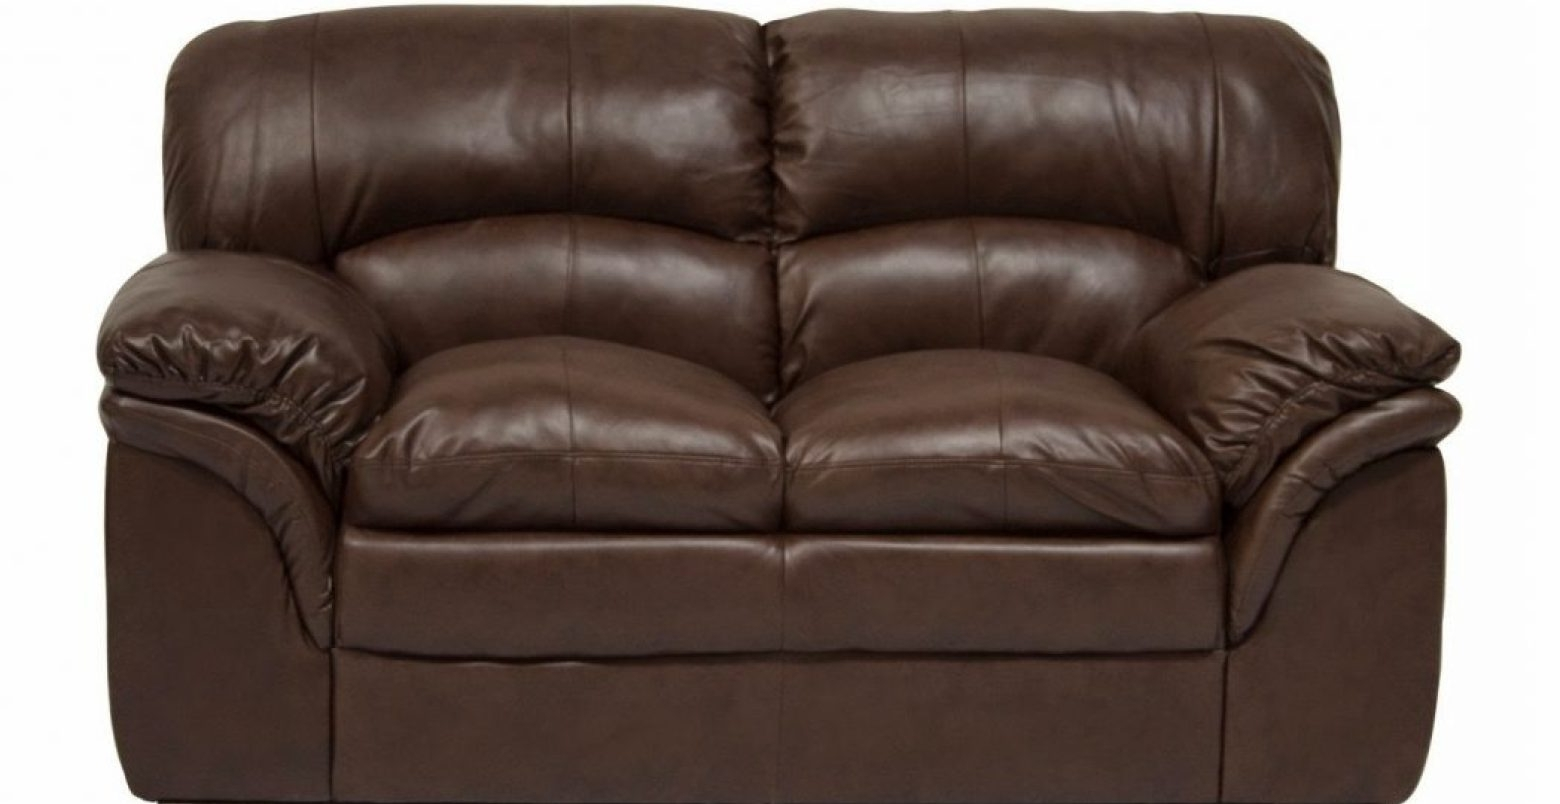 2017 Craigslist Leather Sofas With Leather Sofa Deals Poling Homes Second Hand Black Leather Sofas (View 1 of 15)